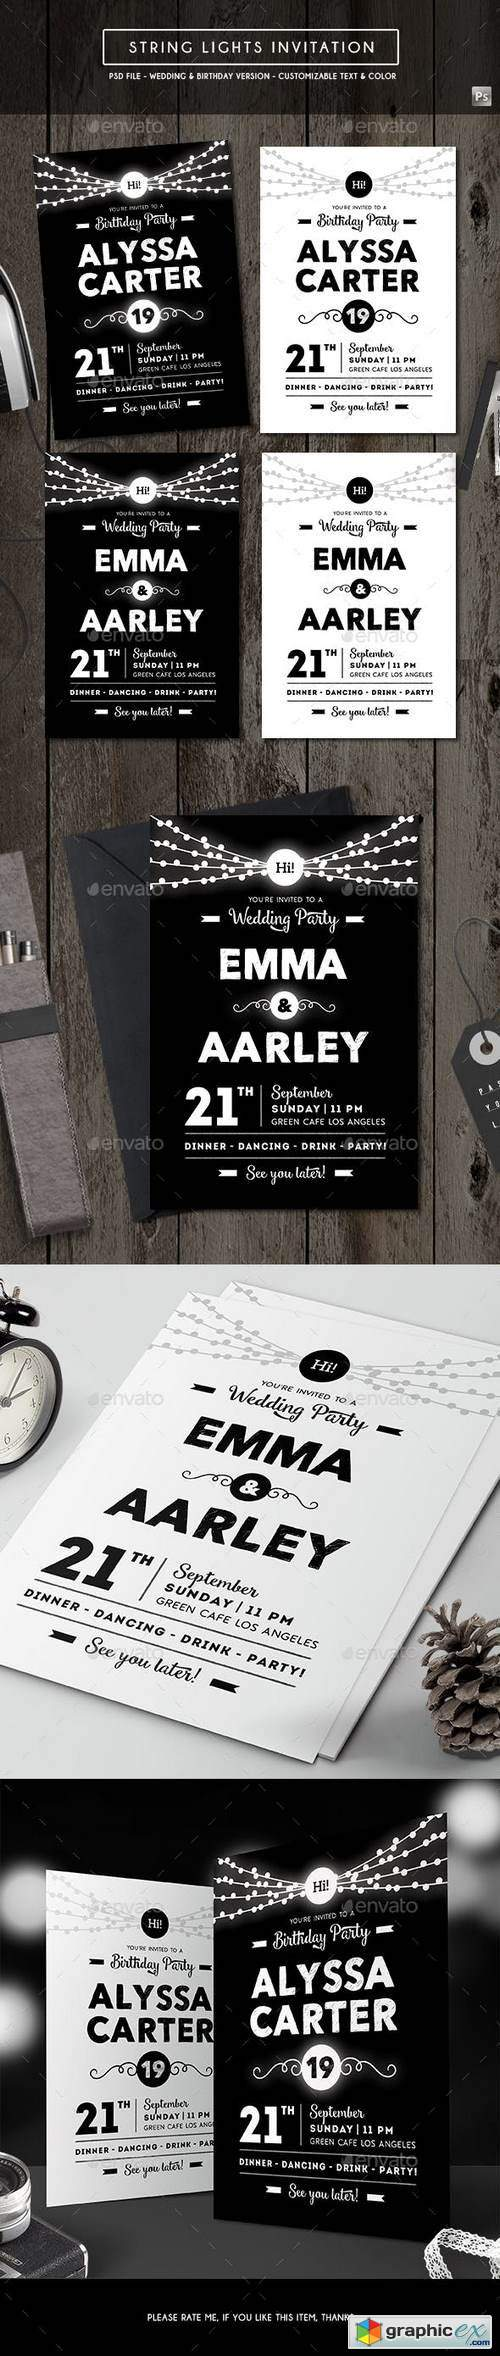 String Lights Invitation (Wedding & Birthday)